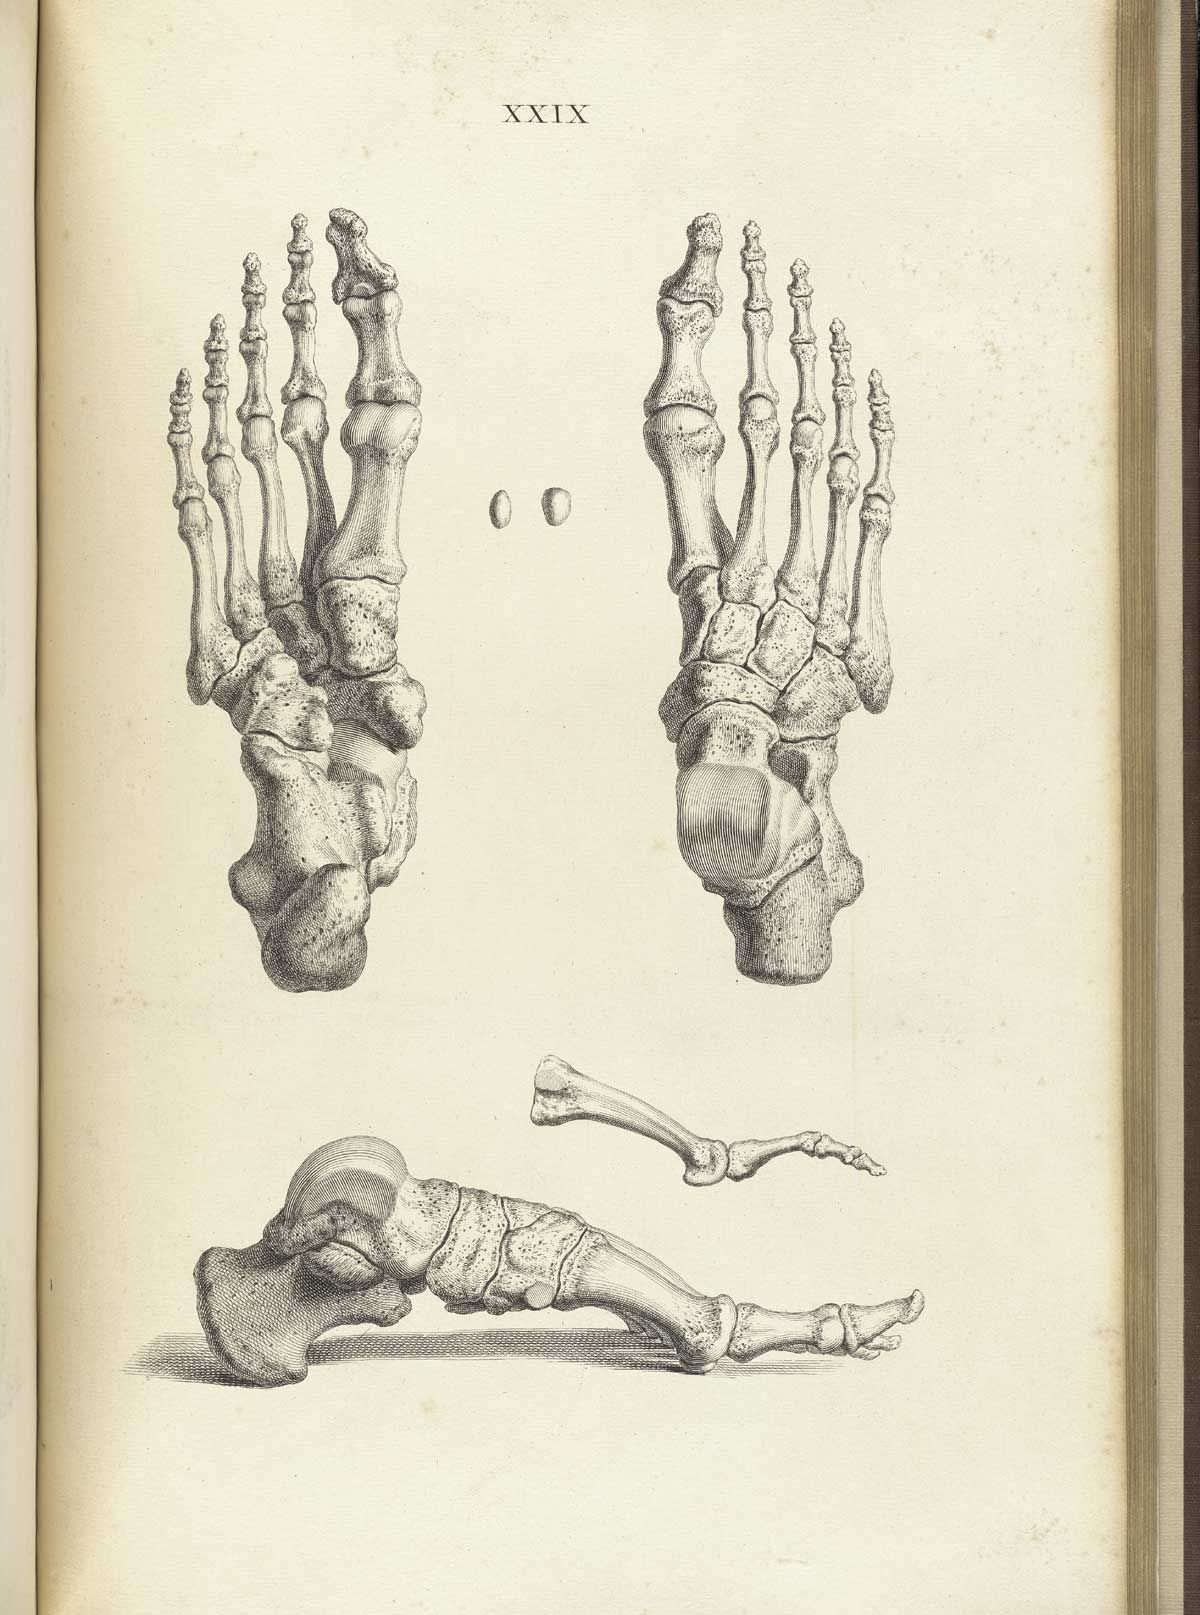 1200x1615 Bones Of The Foot, From William Cheselden's Osteographia, Nlm Call